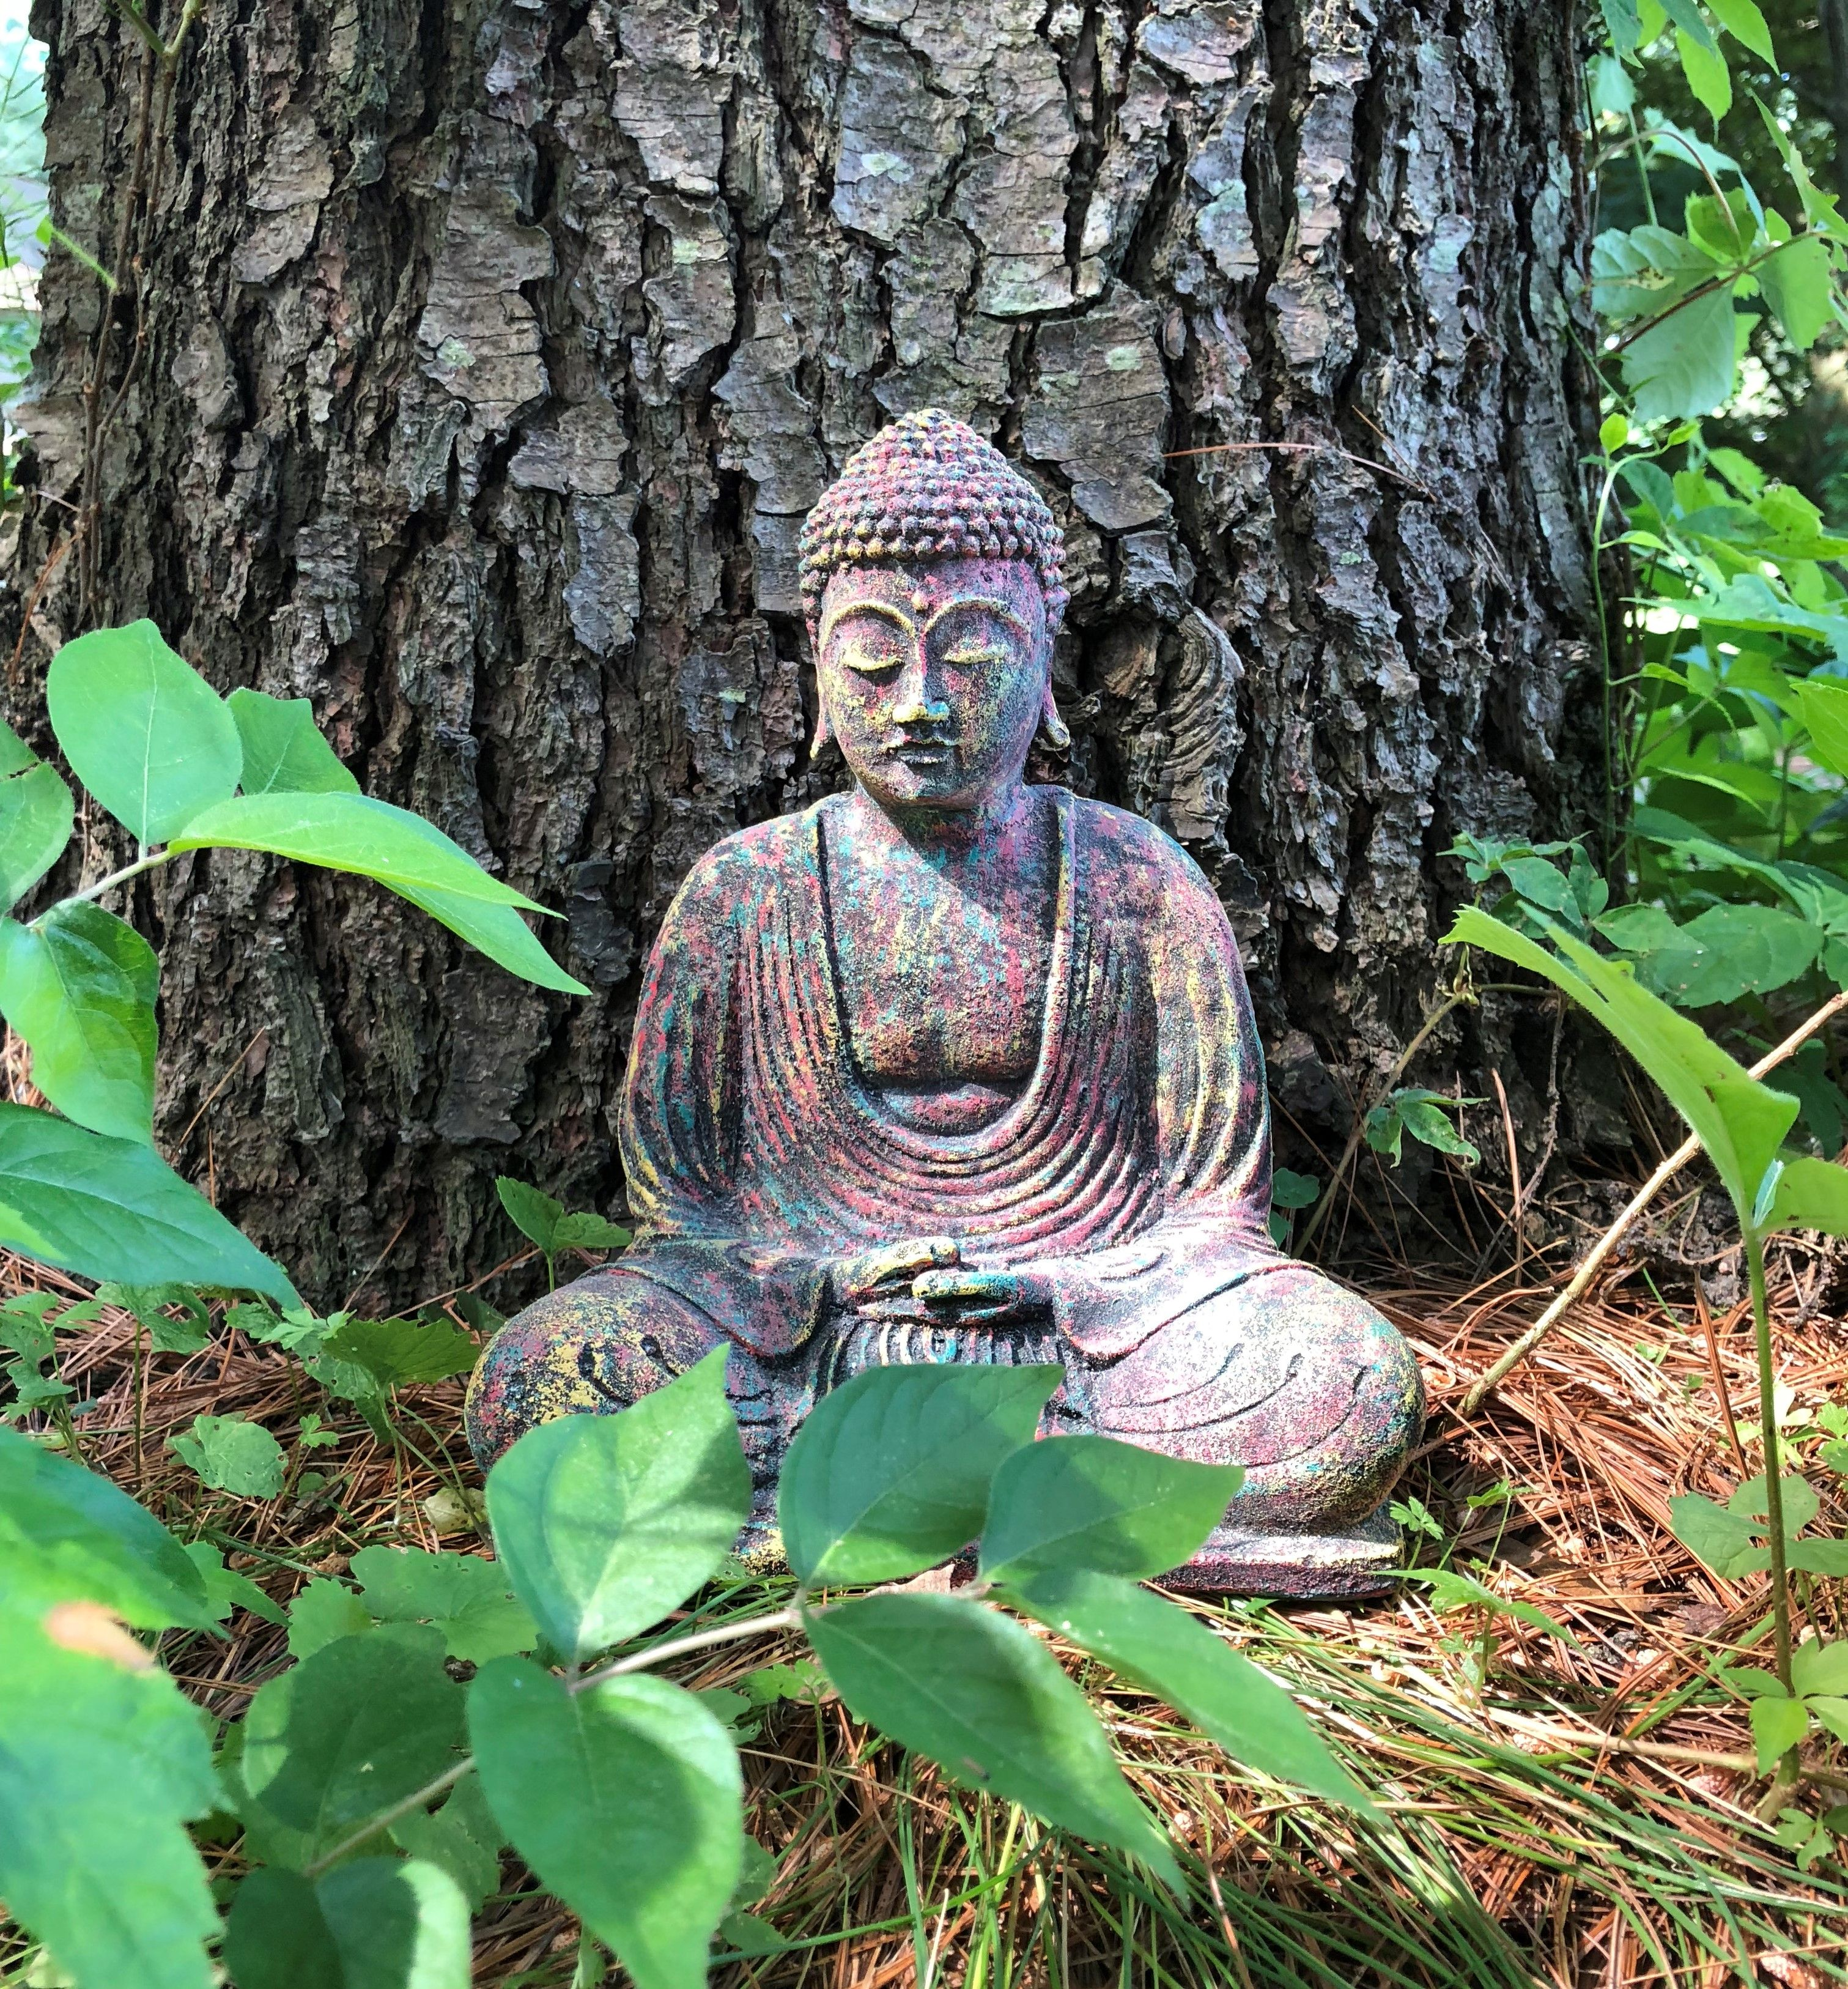 A Basic Guide To Meditation These Instructions Are For A